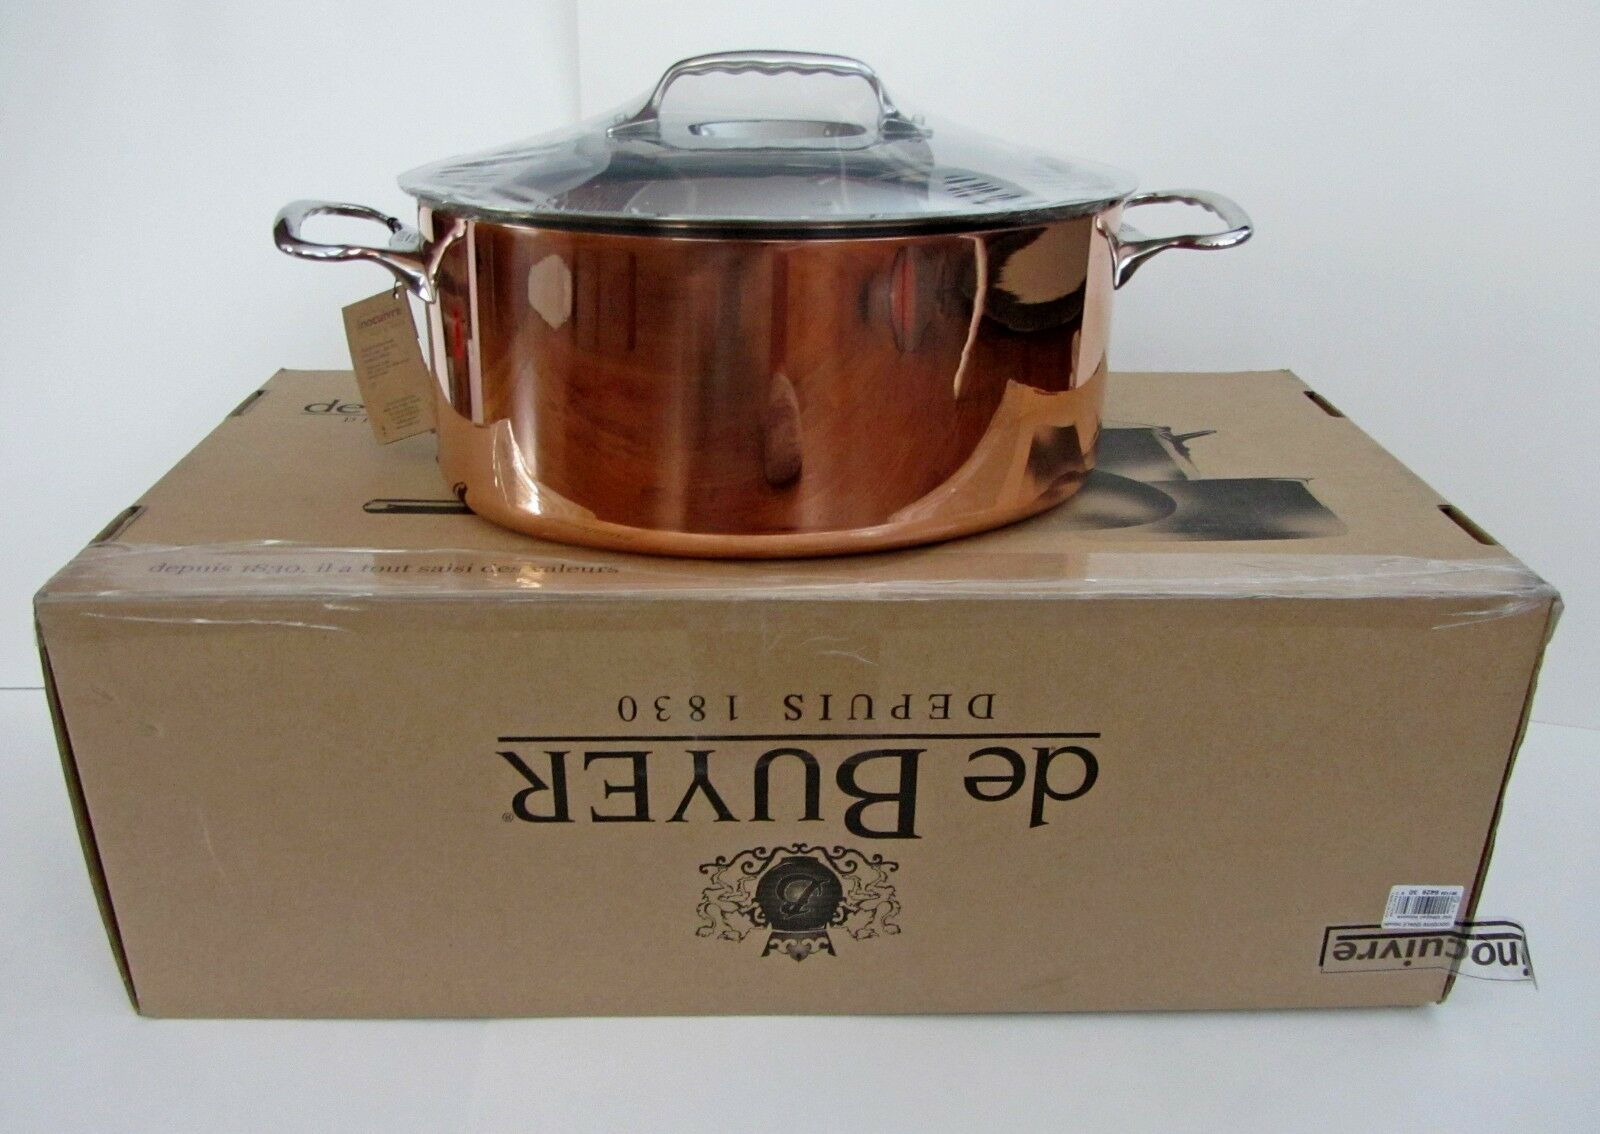 De Buyer INOCUIVRE Oval Stewpan w. Lid Copper Stainless France 6.5 Liters NEW